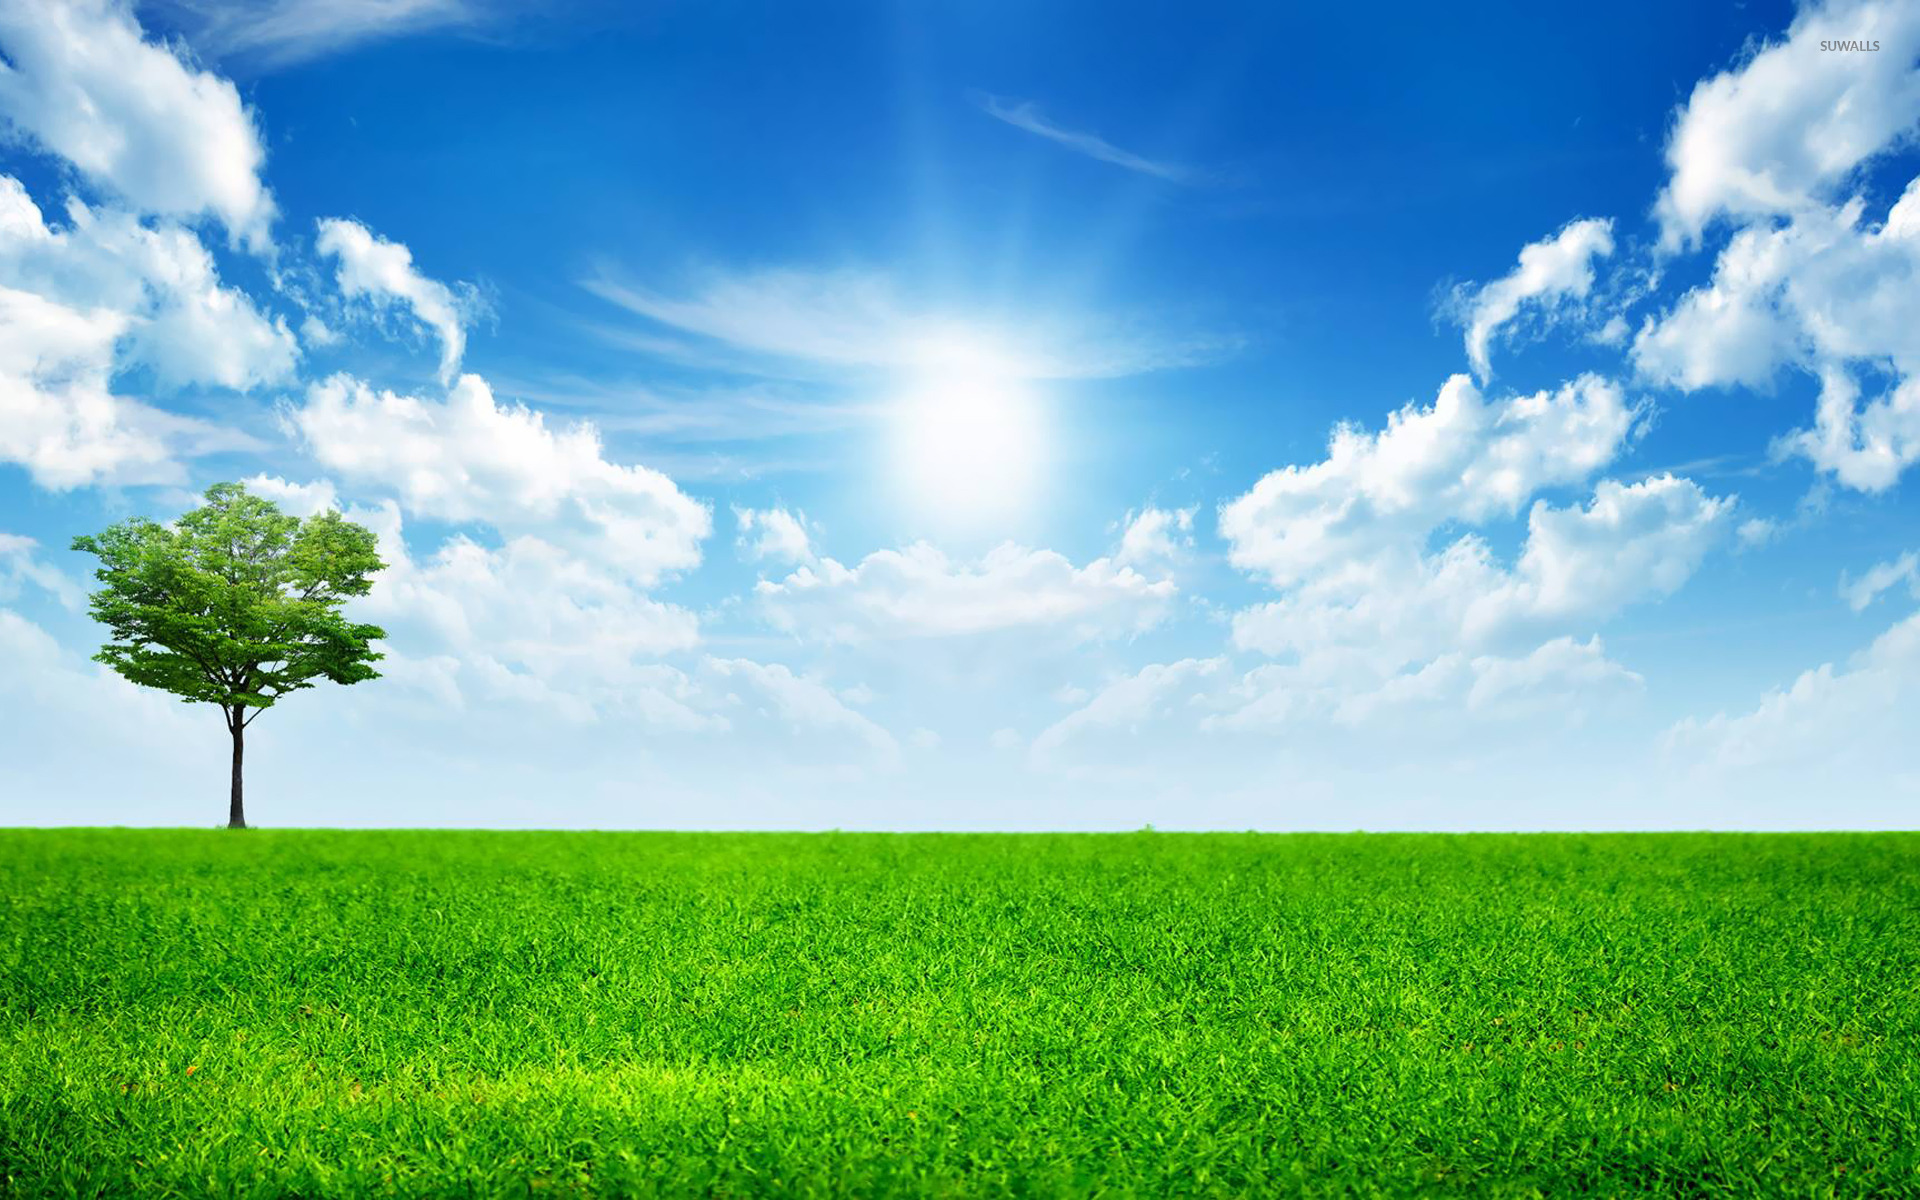 Sunny blue sky wallpaper - Nature wallpapers - #14782